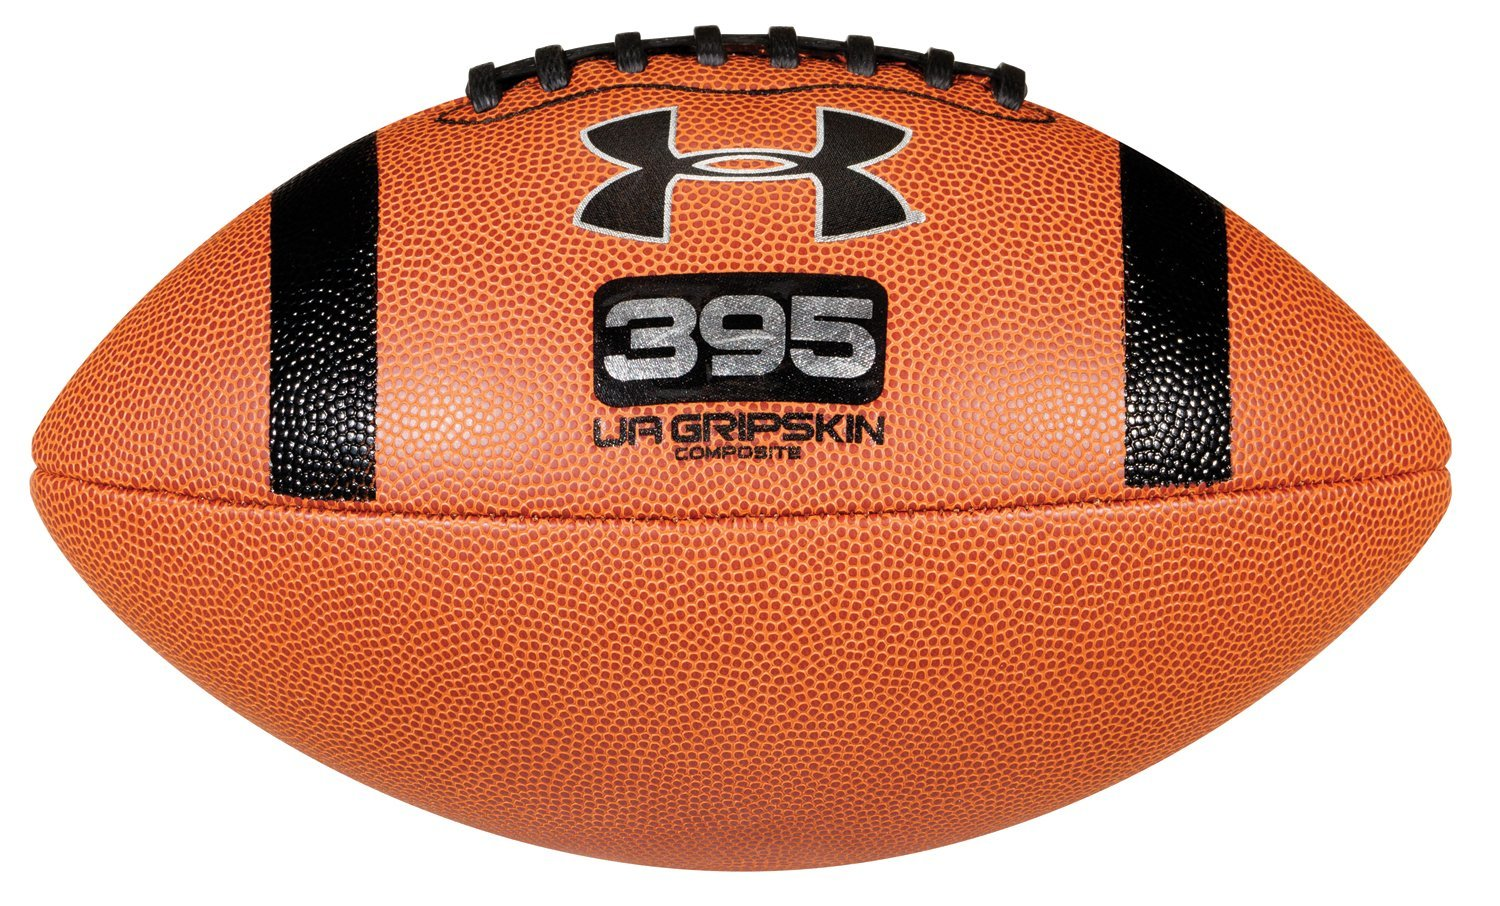 Under Armour 395 Official Gripskin Composite Football – Available in 4 Sizes